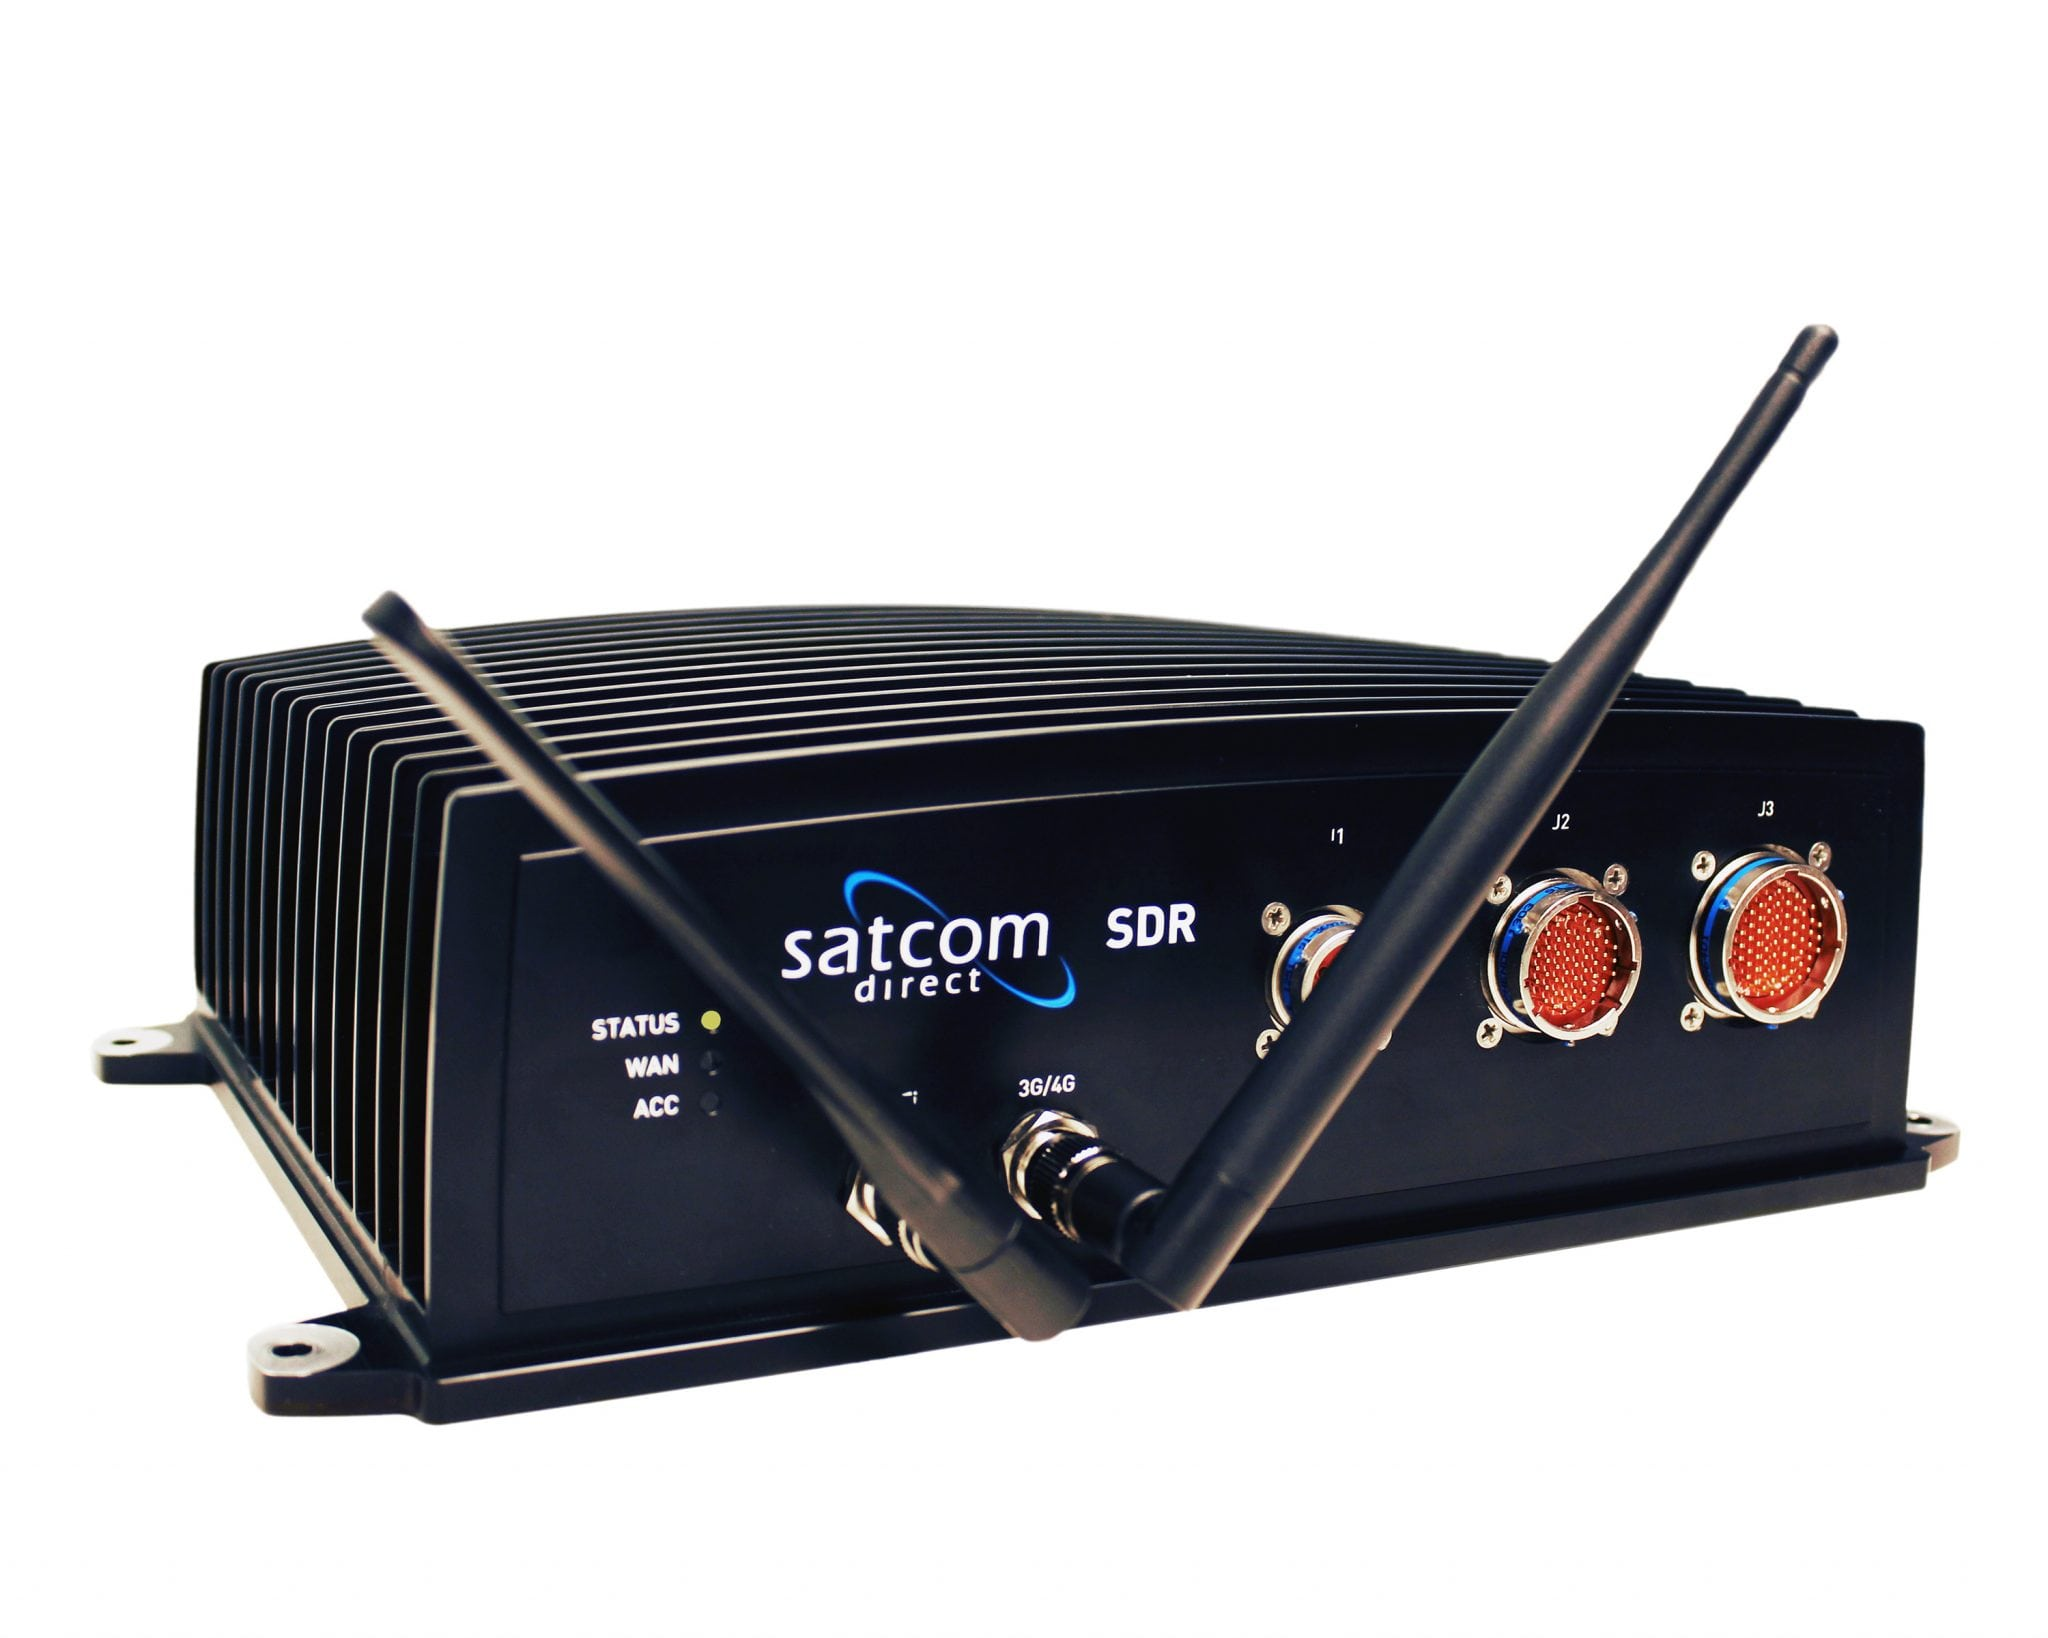 Satcom Direct has enabled HDR service through it's router